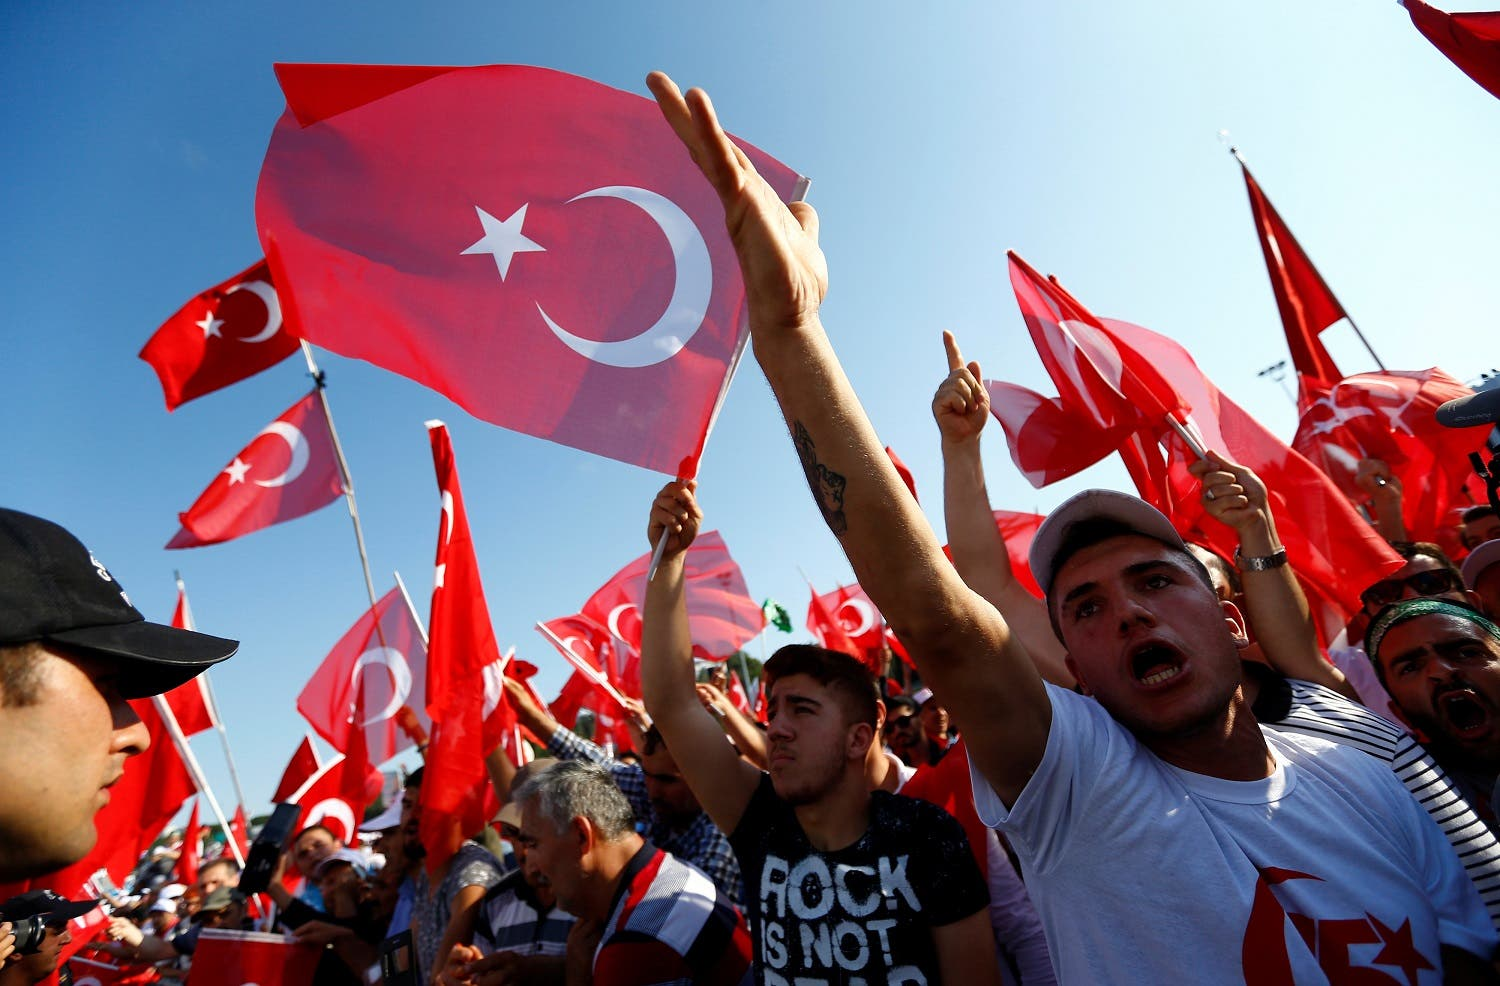 People wave Turkey's national flags as they arrive to attend a ceremony marking the first anniversary of the attempted coup at the Bosphorus Bridge in Istanbul, Turkey July 15, 2017. (File photo: Reuters)